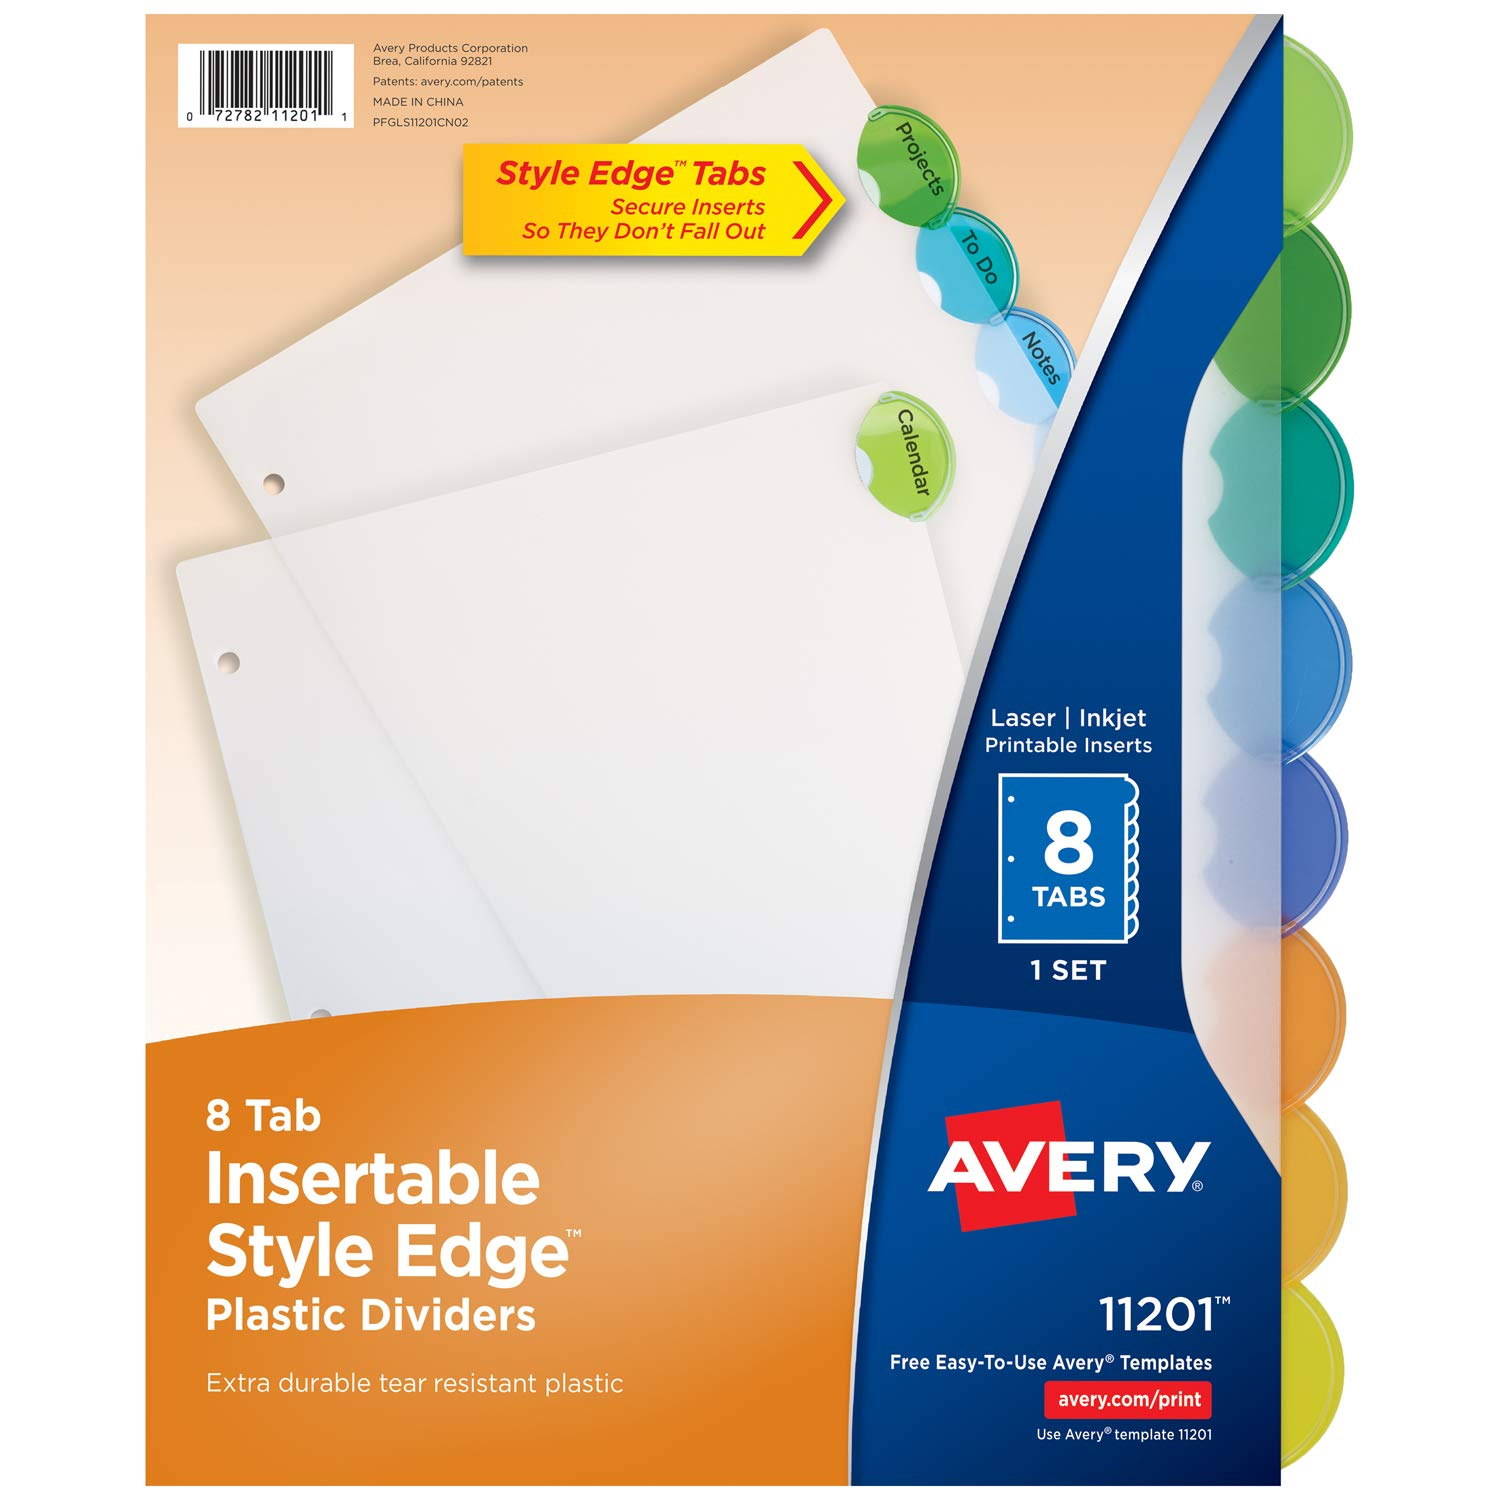 avery 8 tab plastic binder dividers insertable multicolor style edge tabs 1 set 11201